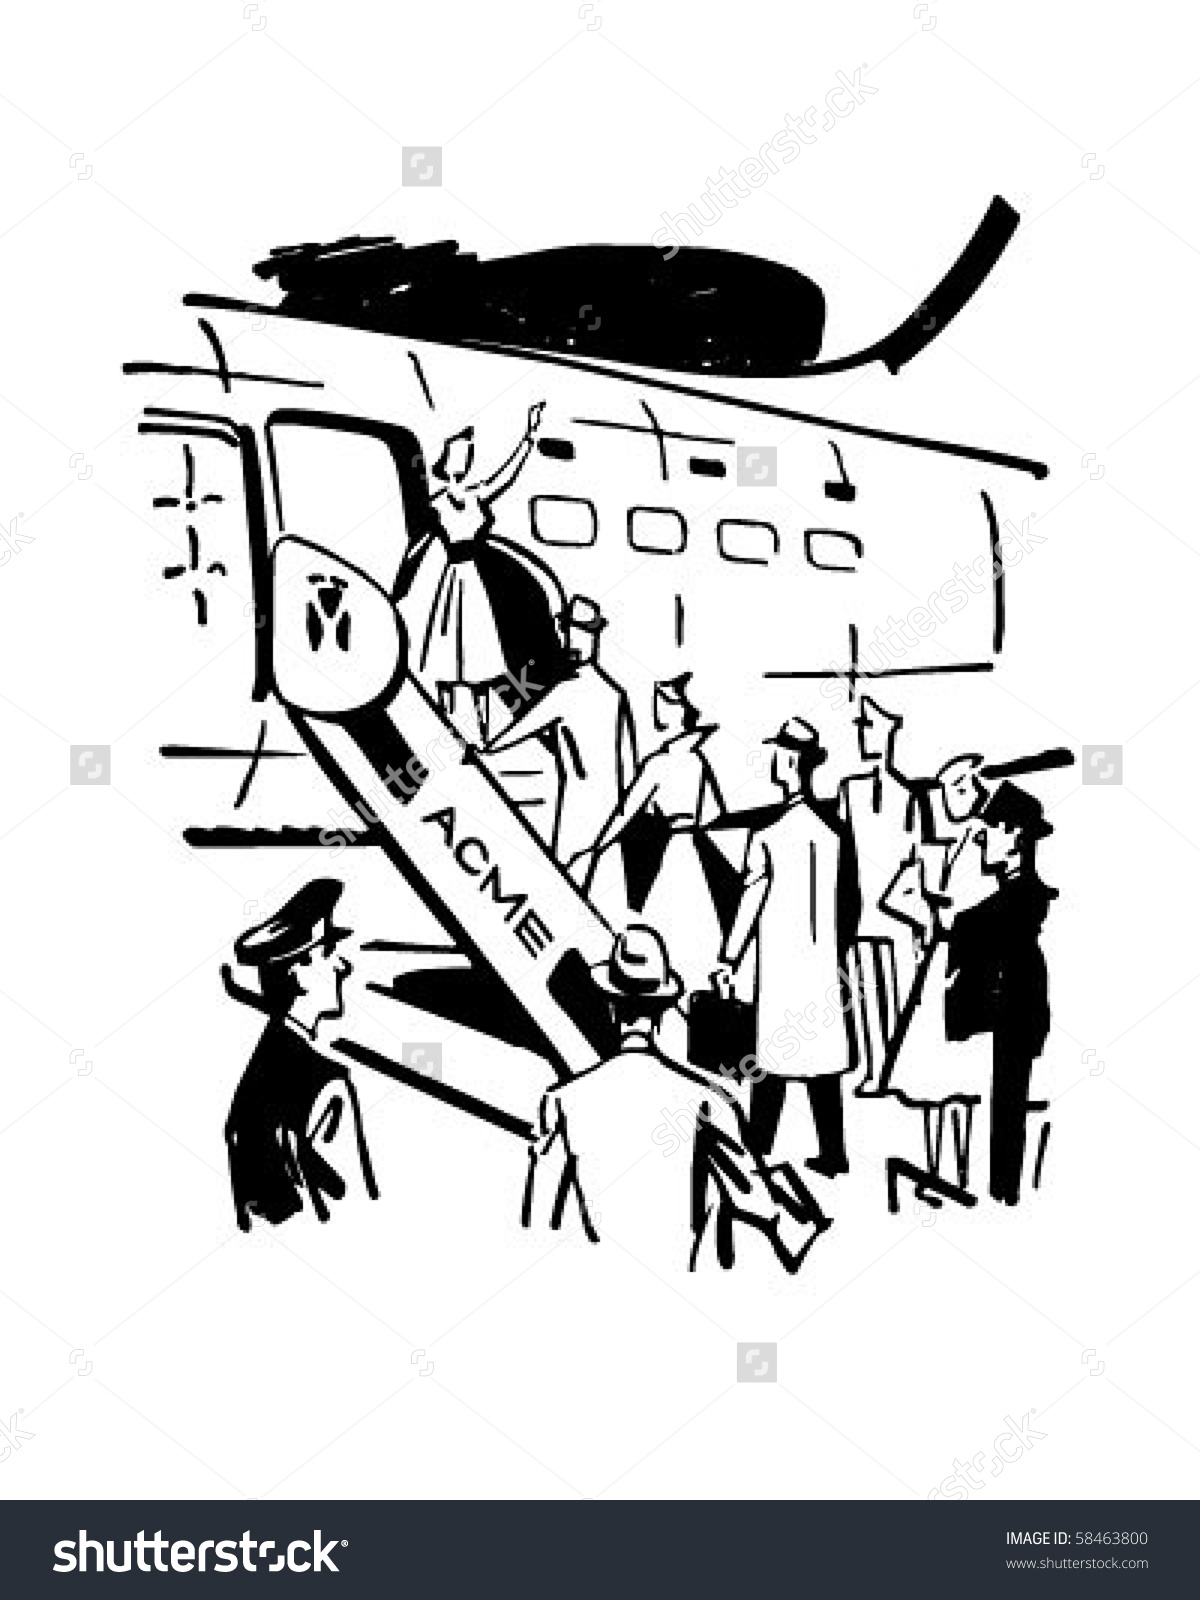 Boarding Plane Retro Clip Art Stock Vector 58463800.